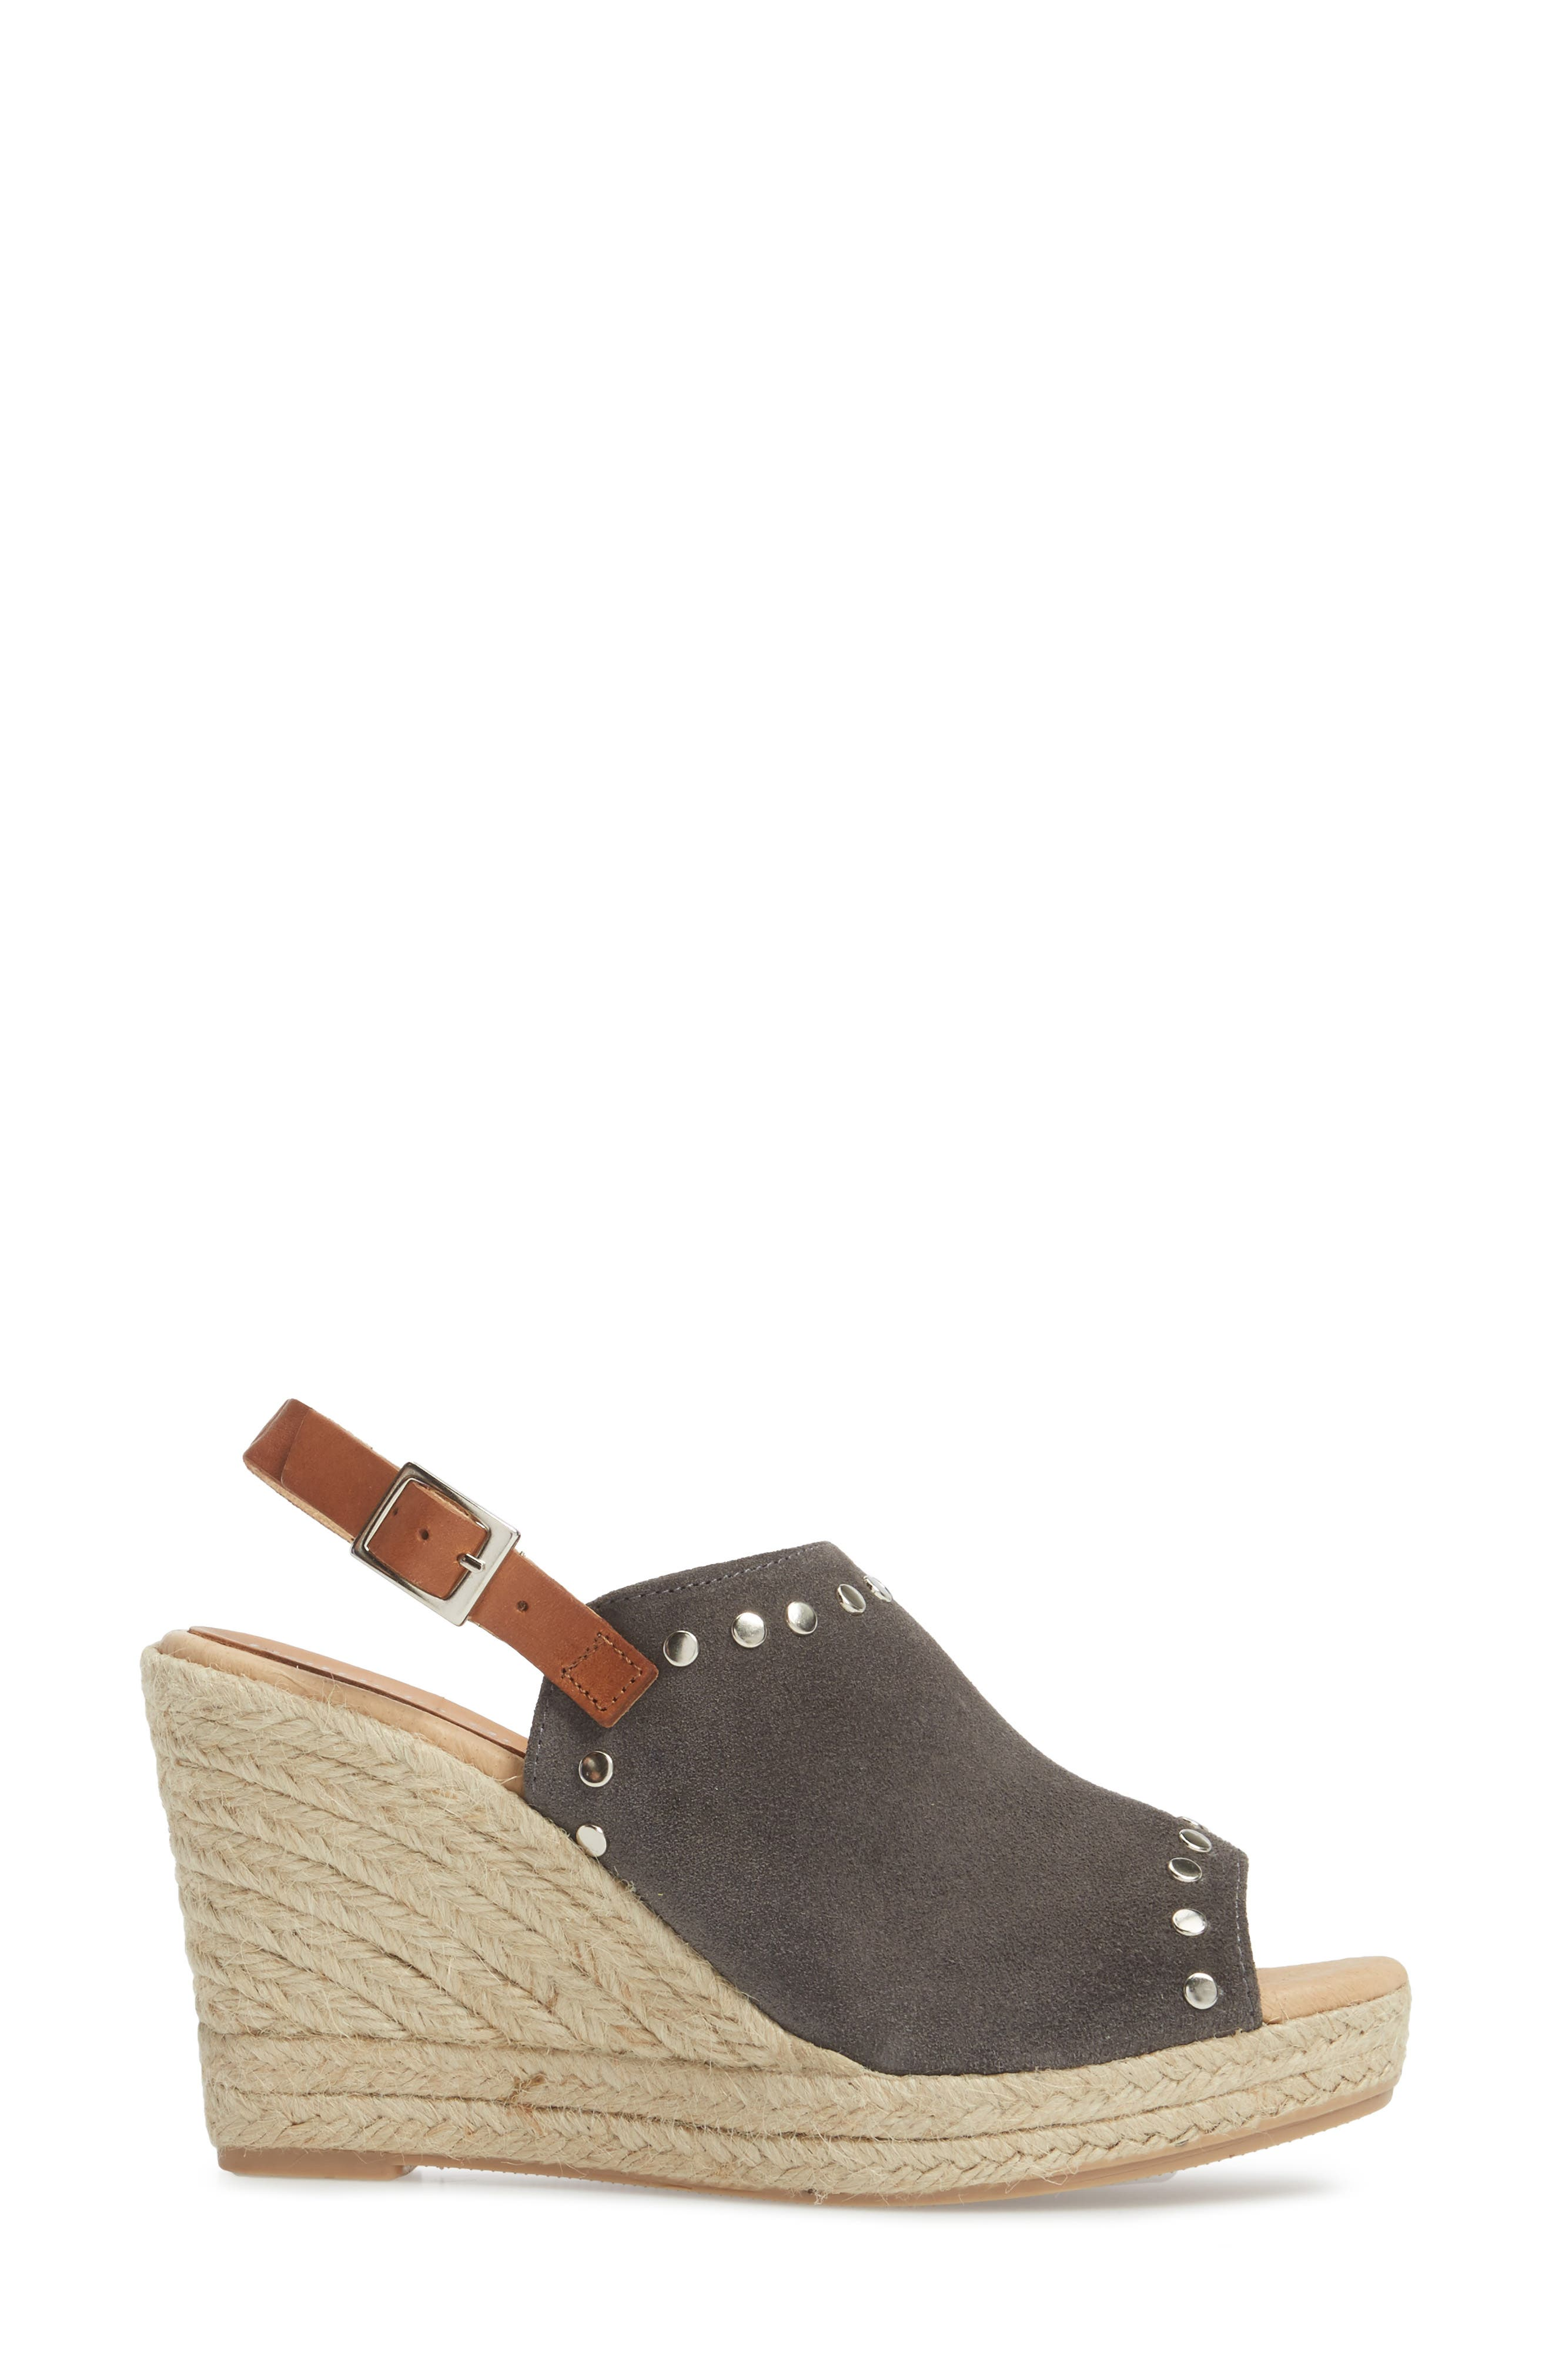 Rockstar Espadrille Wedge Sandal,                             Alternate thumbnail 3, color,                             CHARCOAL SUEDE